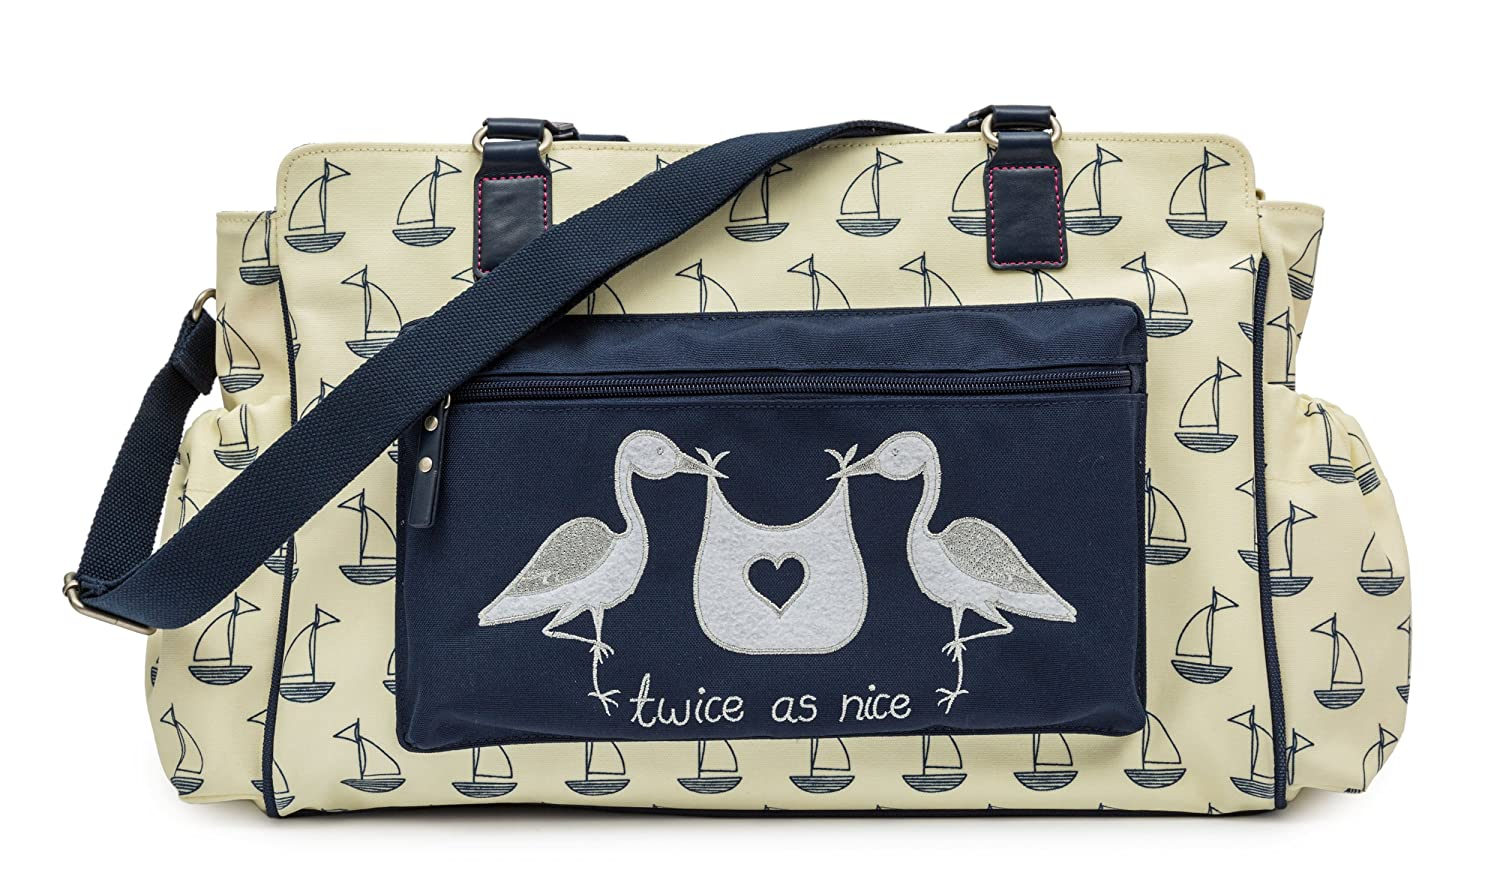 Pink Lining Wickeltasche Twins Bag 'Twice as Nice' Sailing Boats